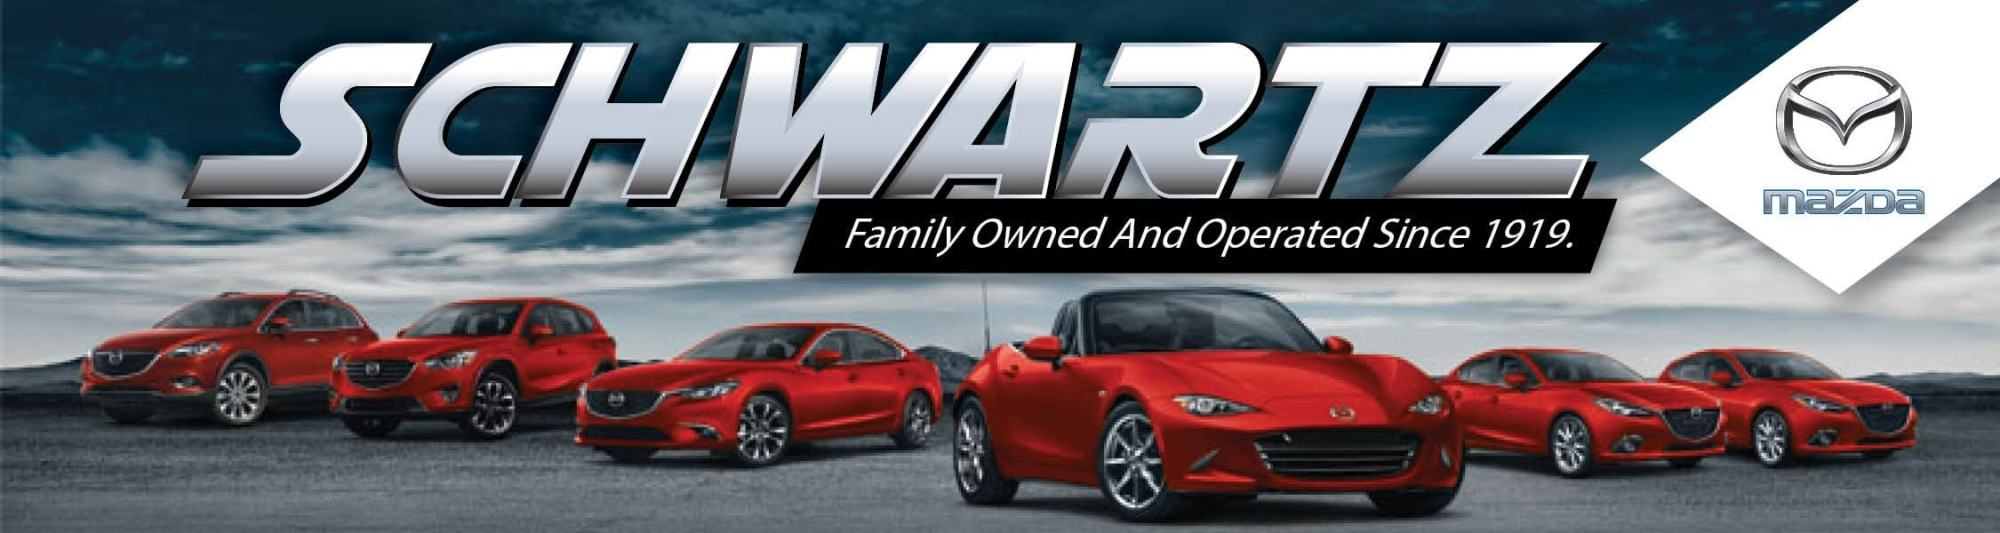 hight resolution of schwartz mazda is your source for all auto service specials and repairs take advantage by printing out these free online parts coupons found